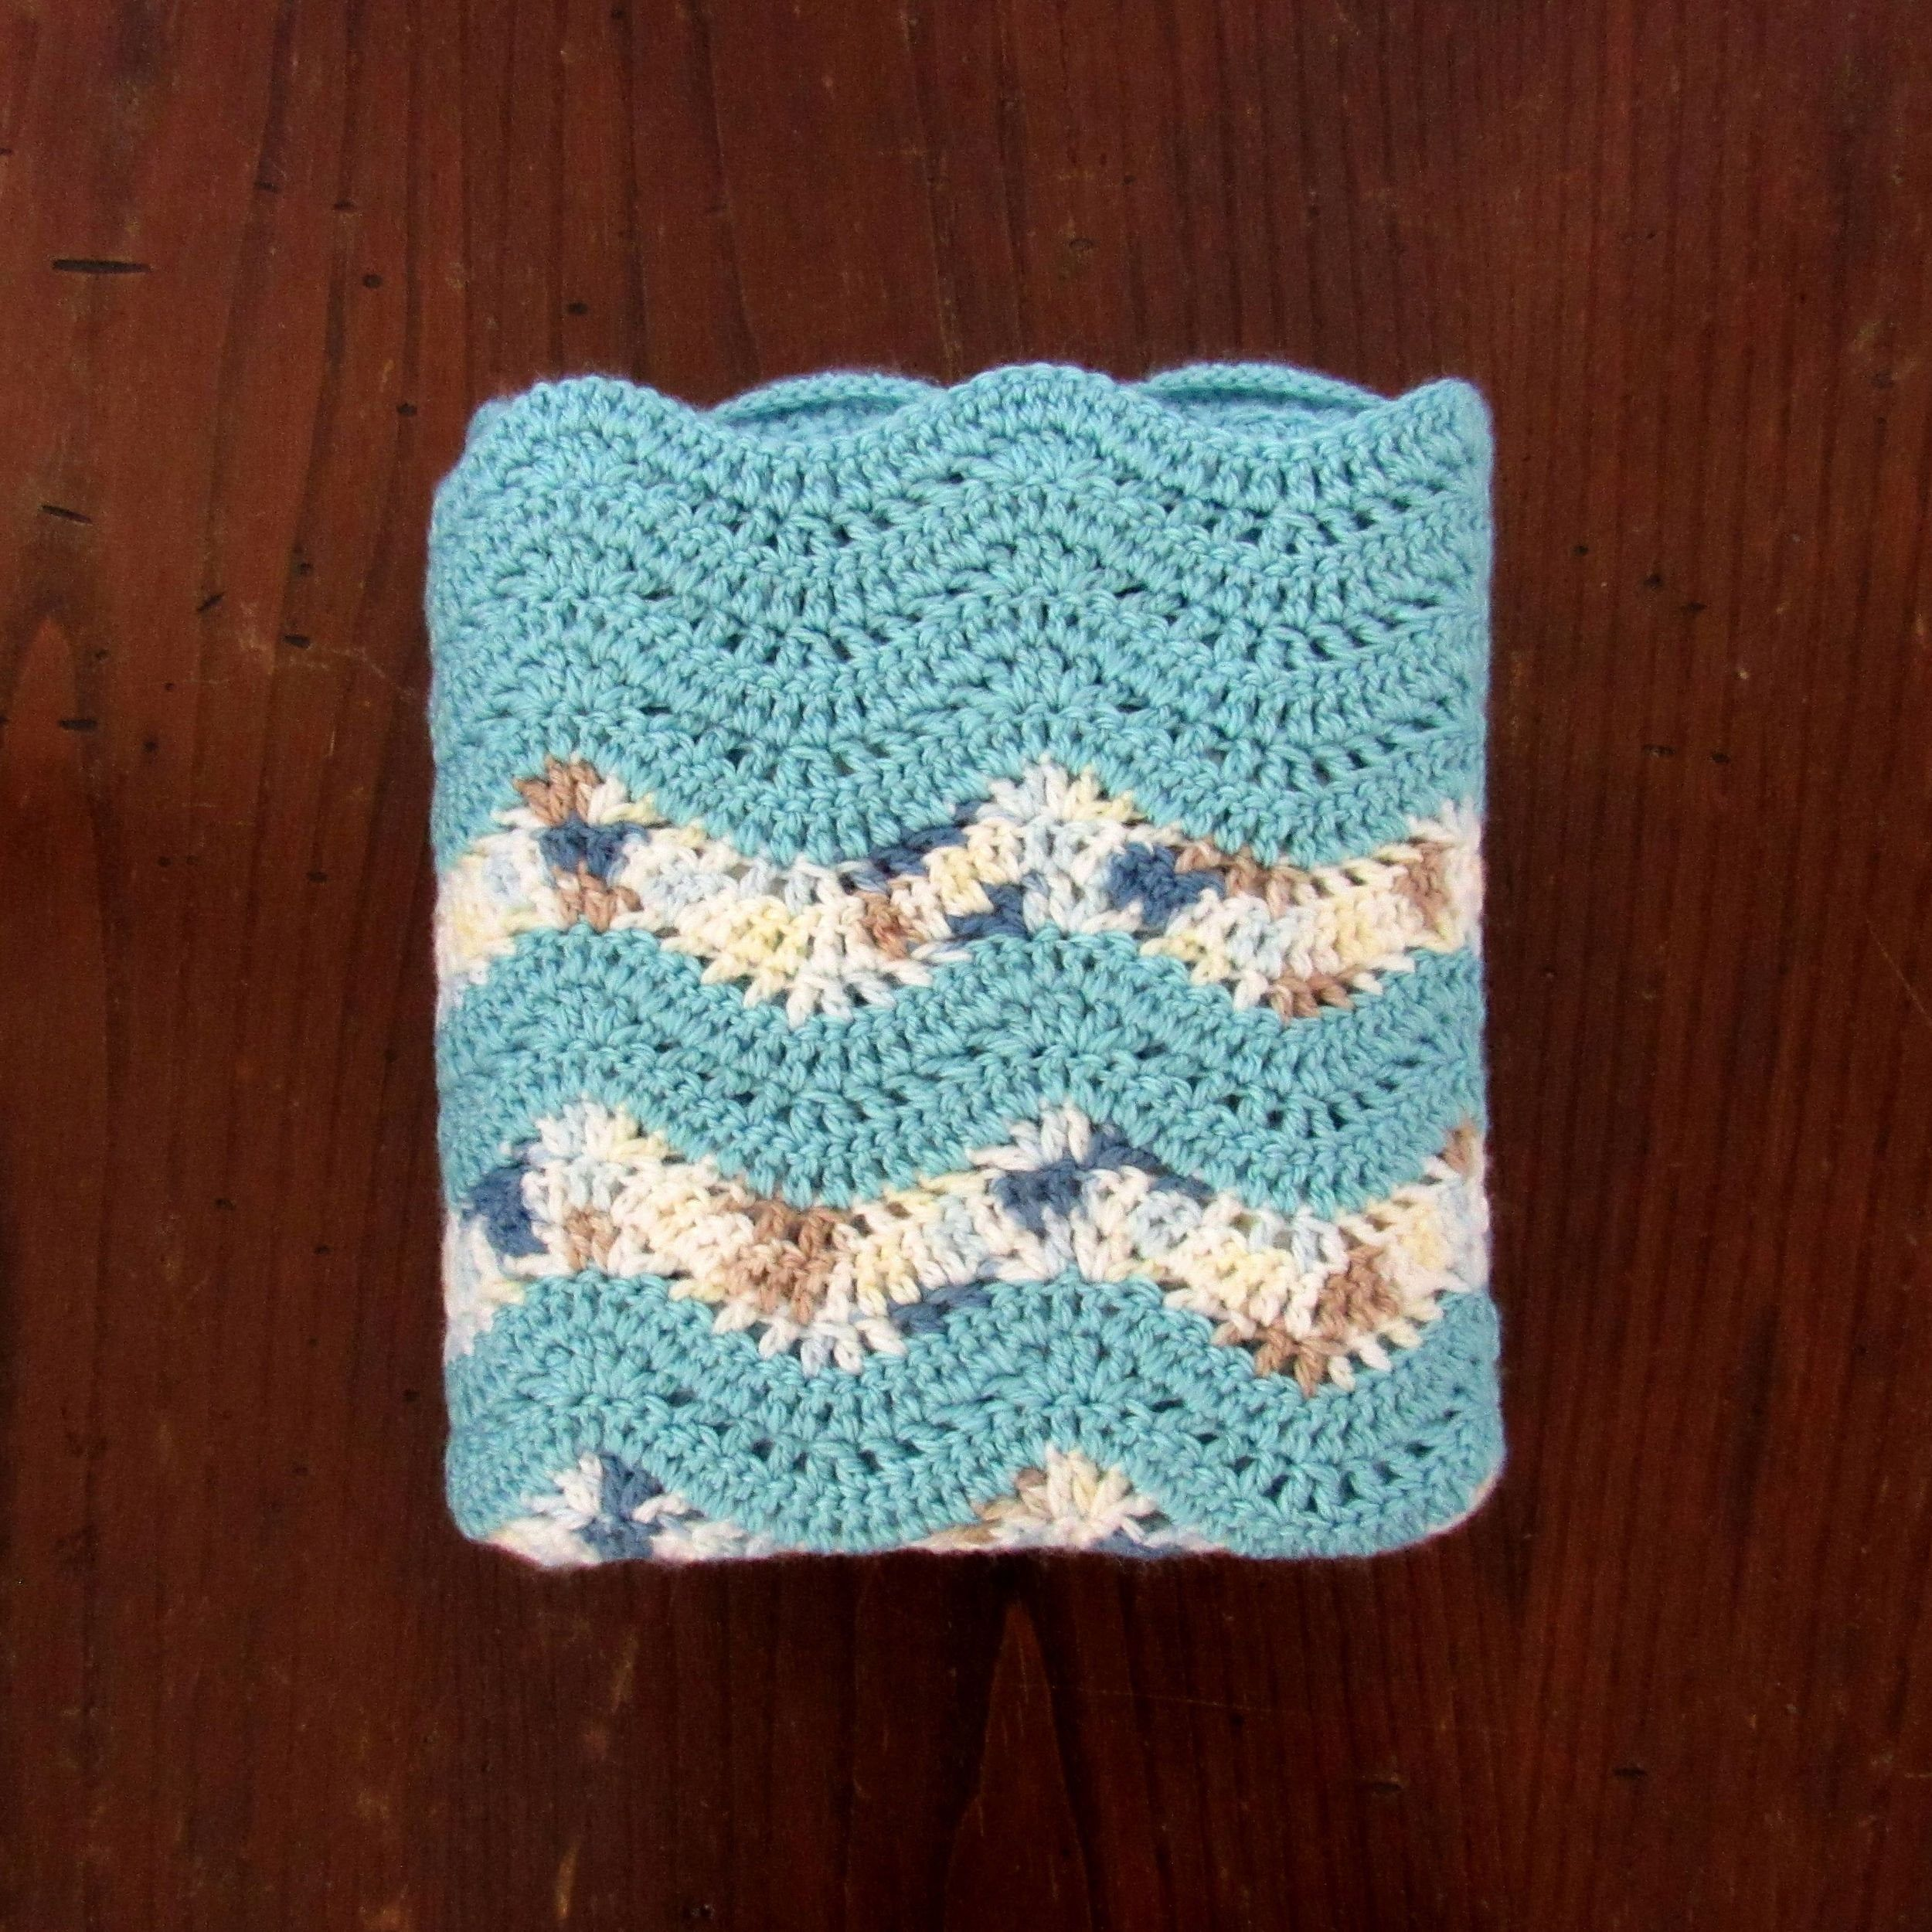 Crochet Baby Blanket - Handmade Boys Baby Turquoise Blue White Beige Yellow Wave Stitch Blanket - Knit Security Blanket - 36 x 34 Inches